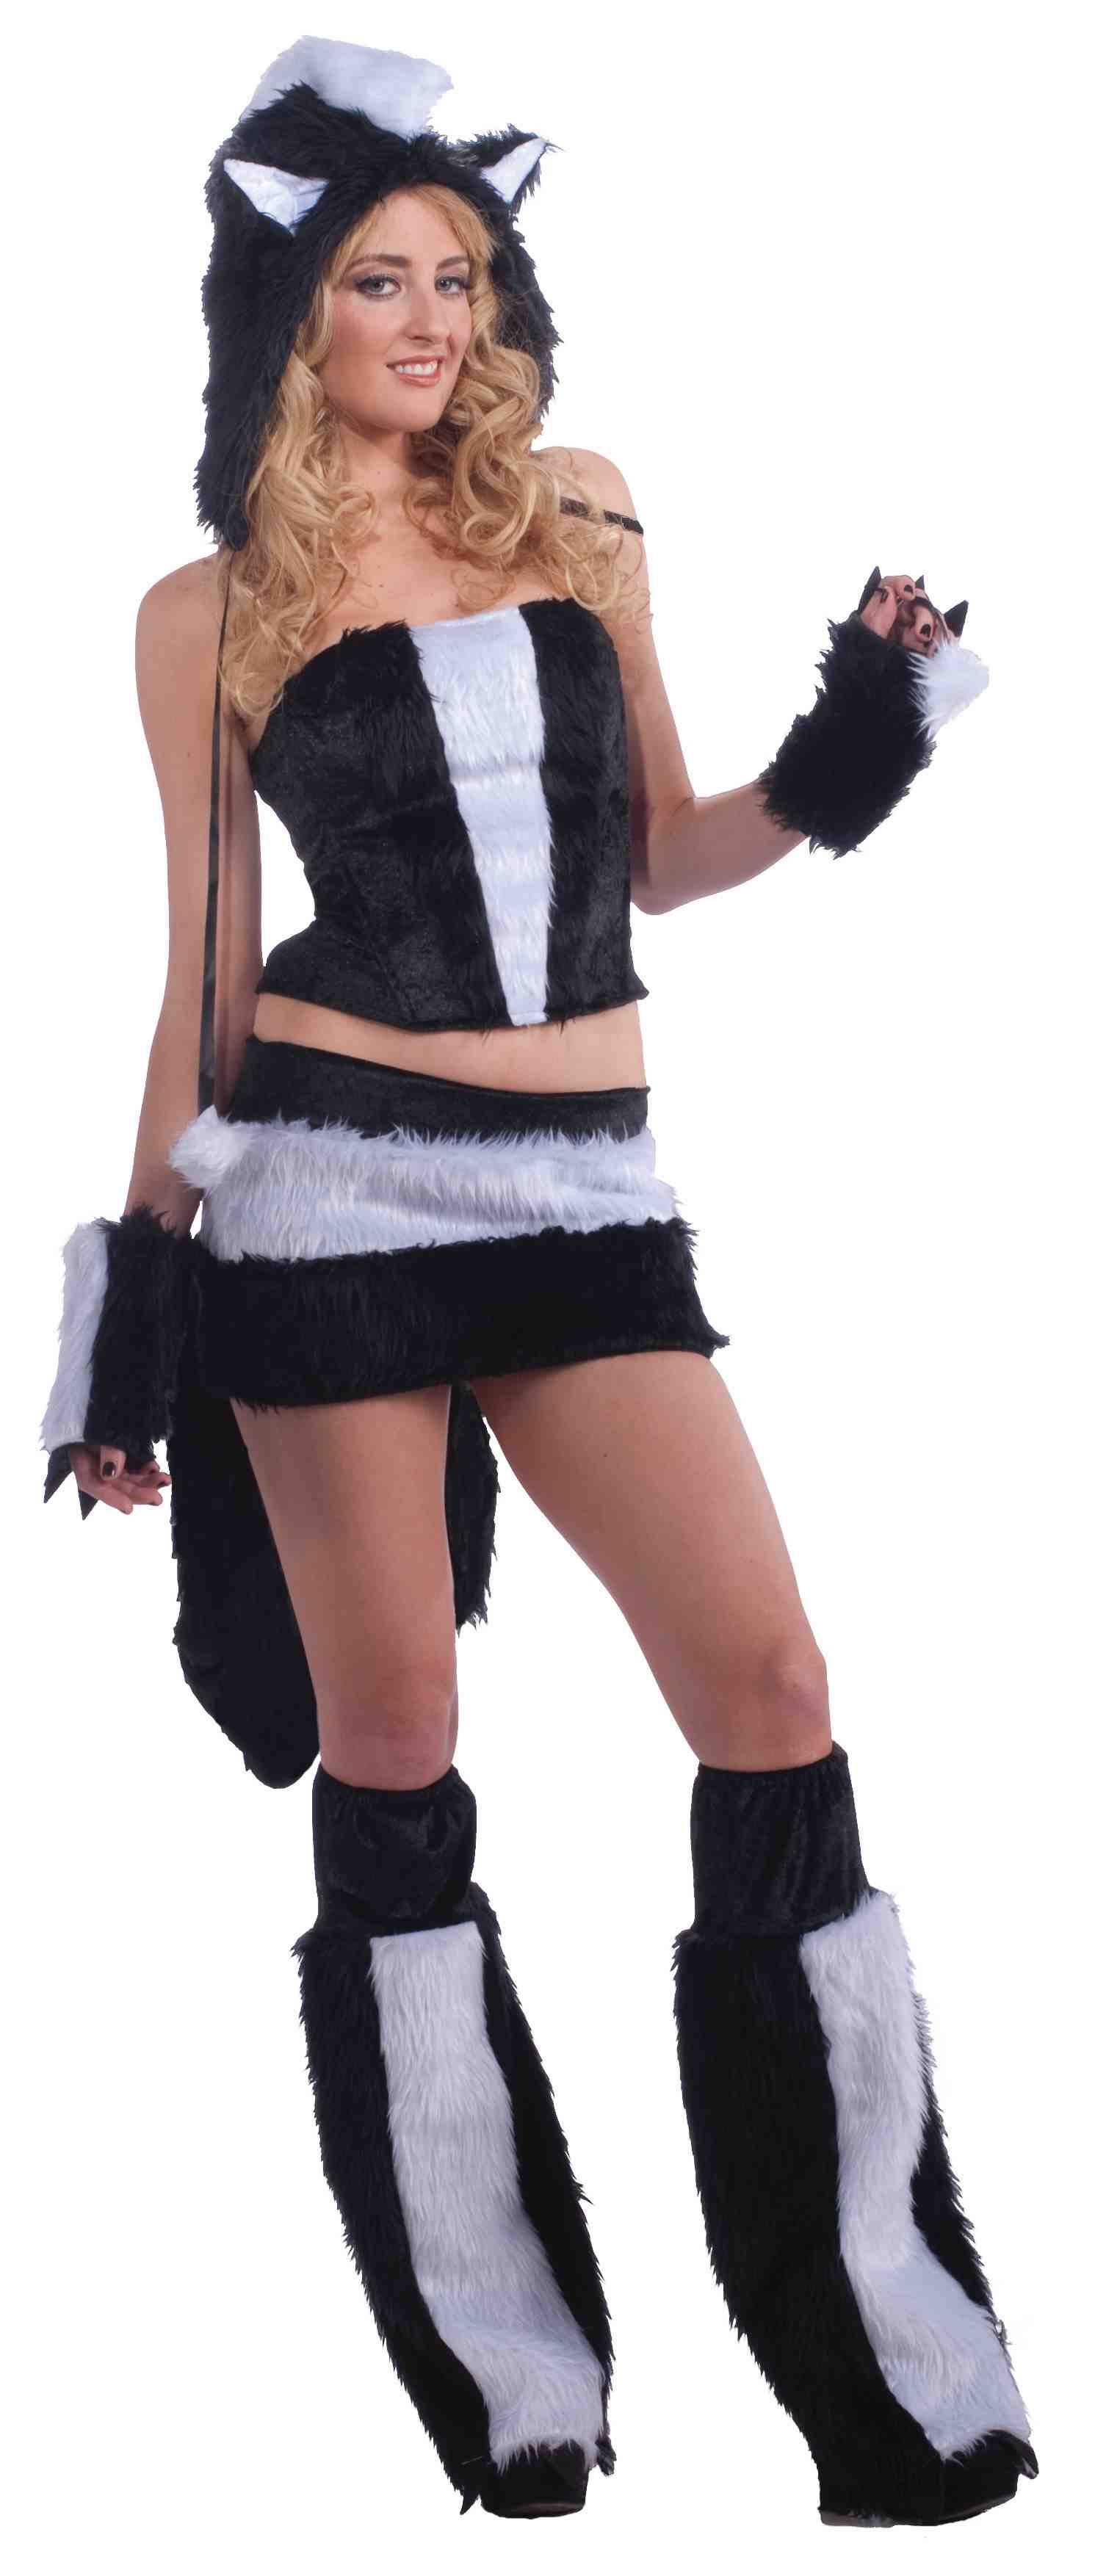 Adult Skunk Women Furry Hood Costume  sc 1 st  The Costume Land & Adult Skunk Women Furry Hood Costume | $38.99 | The Costume Land